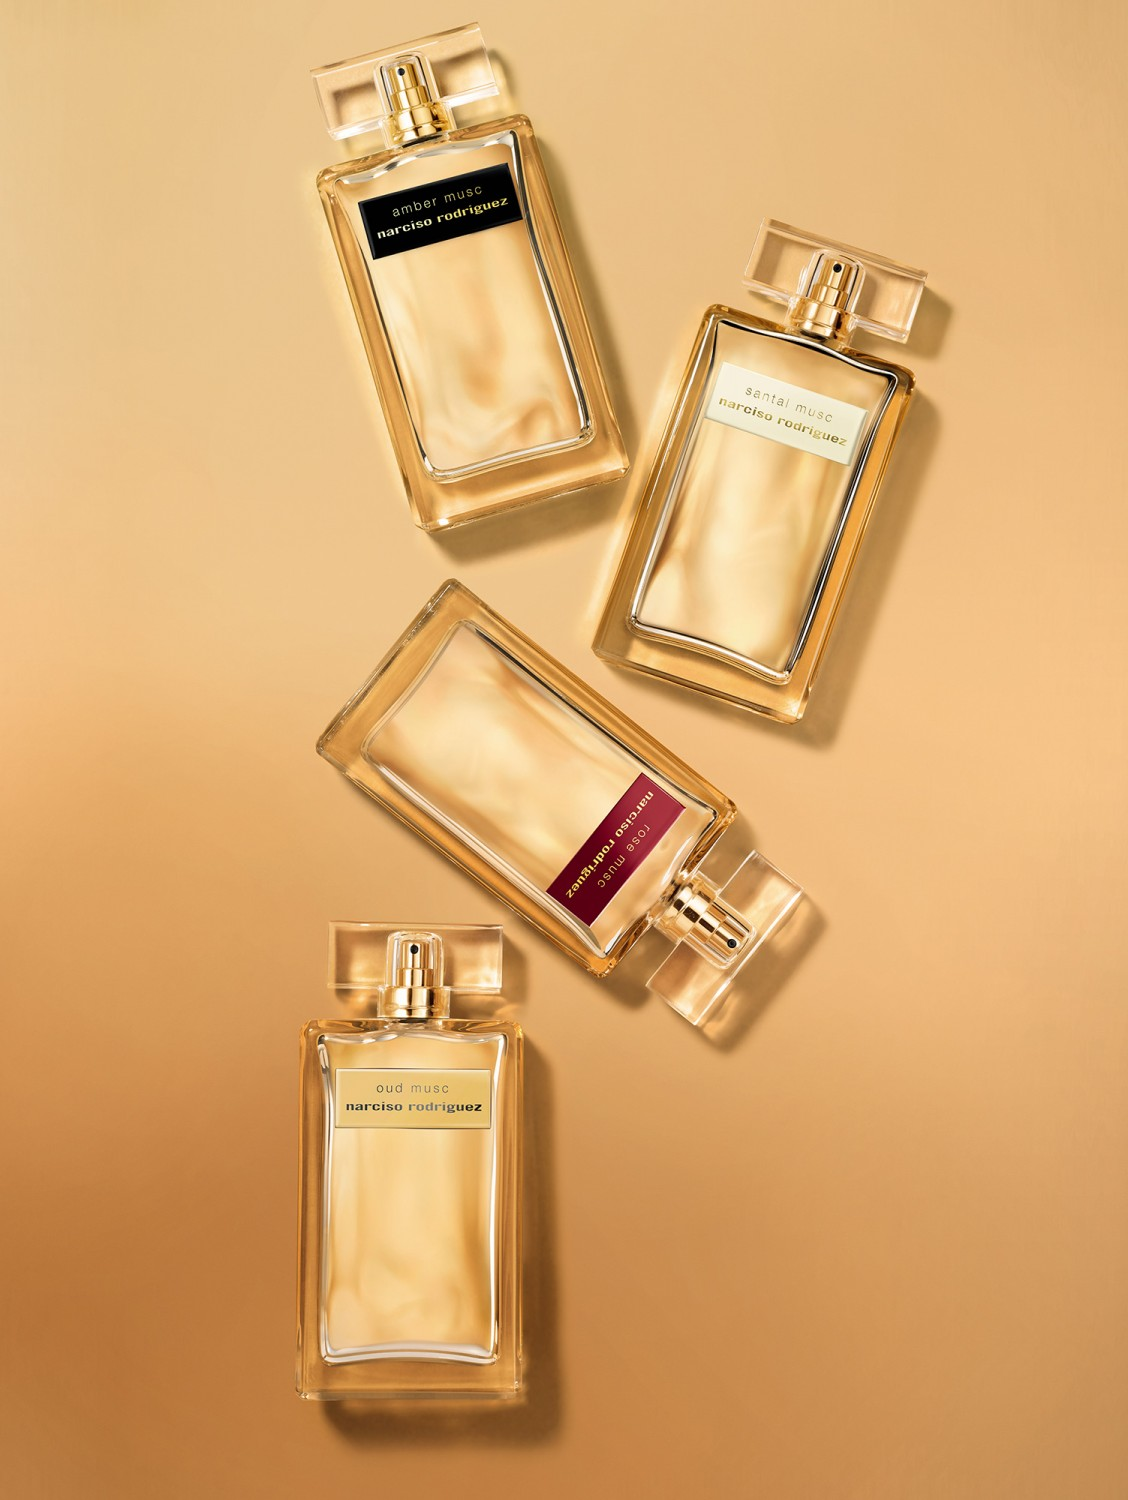 Narciso Rodriguez Oud Musc Perfume